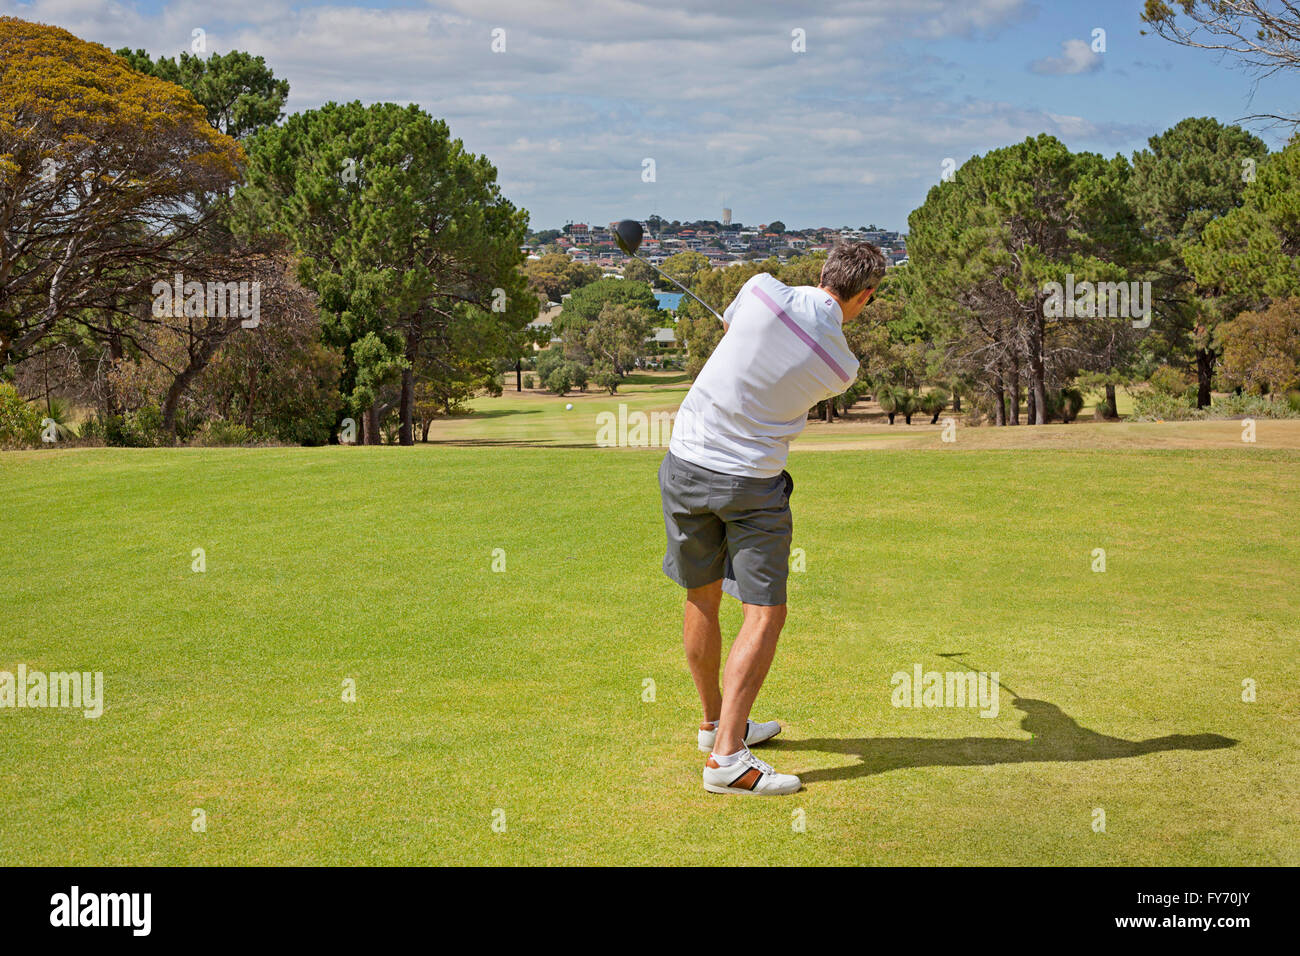 A golfer shortly after hitting a tee shot - Stock Image